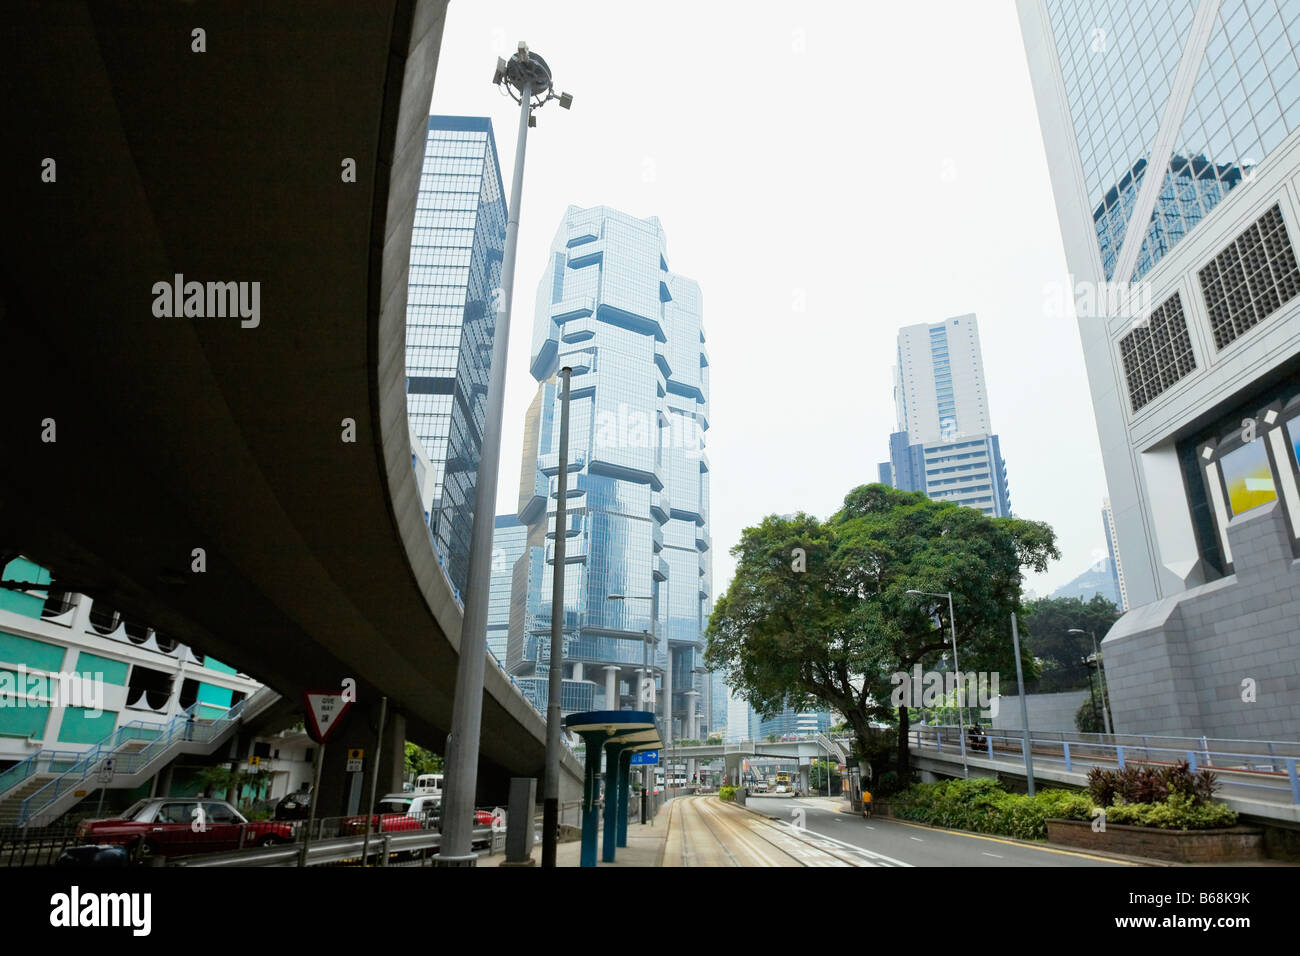 Low angle view of skyscrapers in a city, Des Voeux Road, Hong Kong Island, China - Stock Image